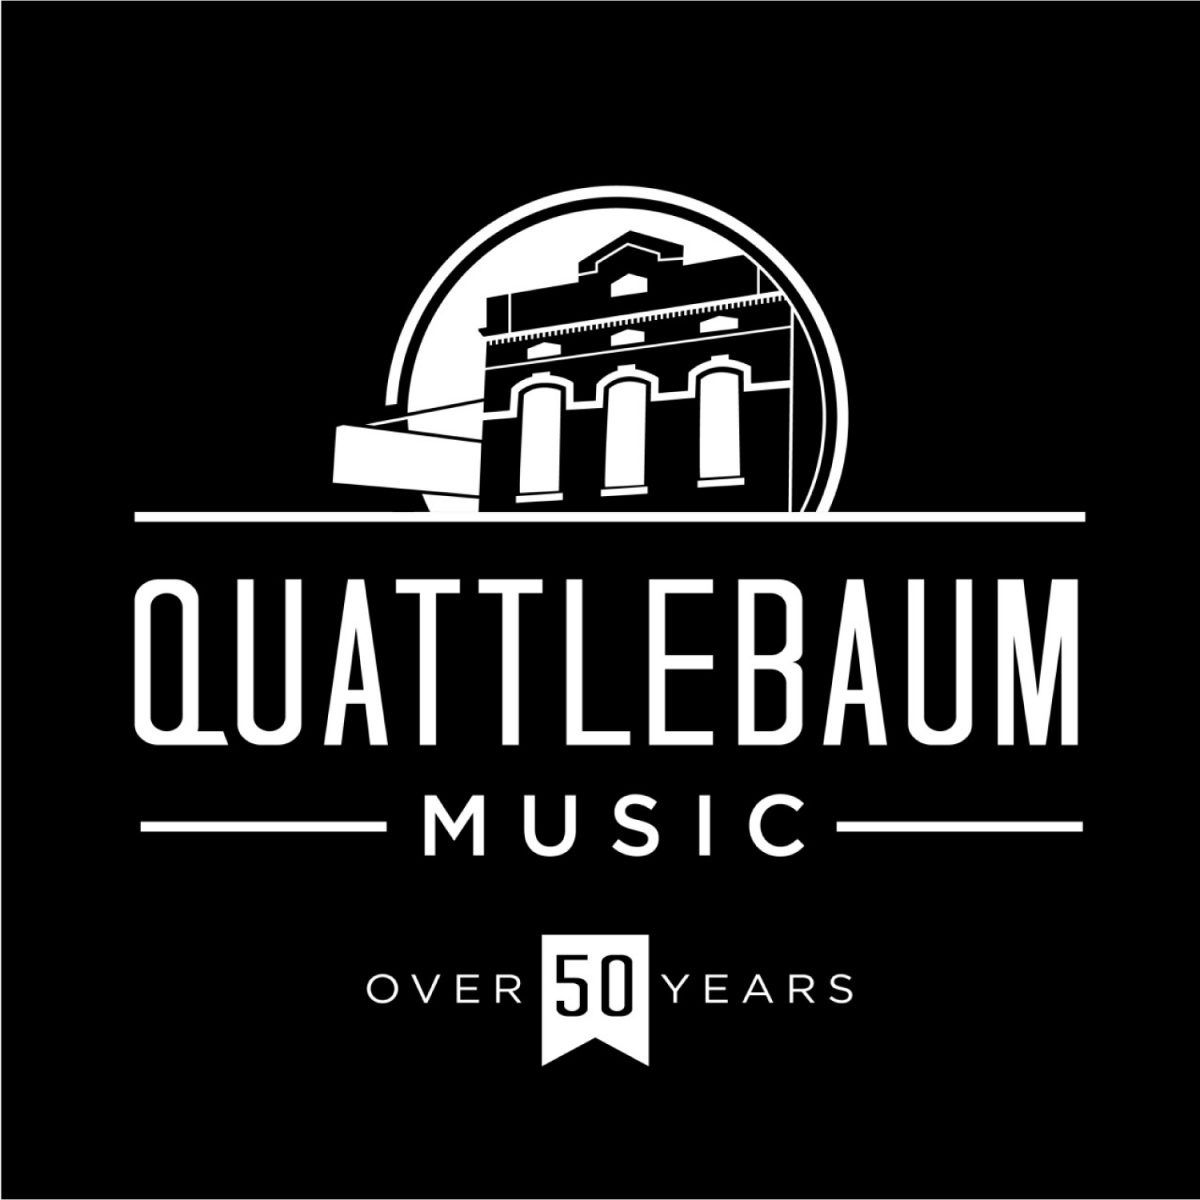 Quattlebaum Music 50 Year logo